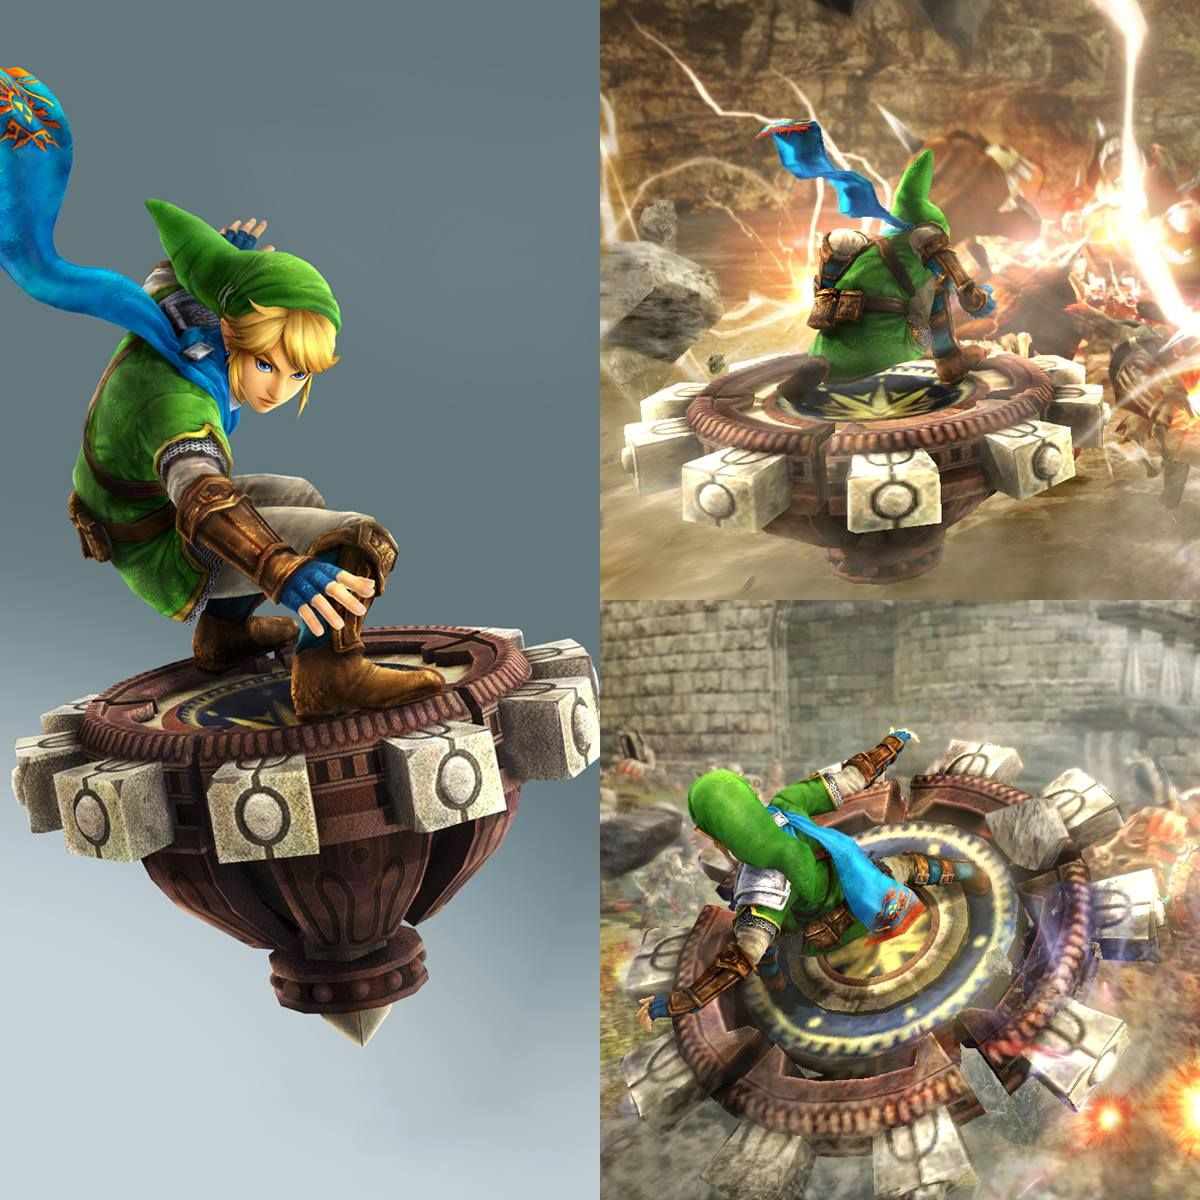 Link Will Get A New Weapon In Hyrulewarriors The Spinner From Twilight Princess Get It For Free When Using Link S Amiibo Legend Of Zelda Hyrule Warri